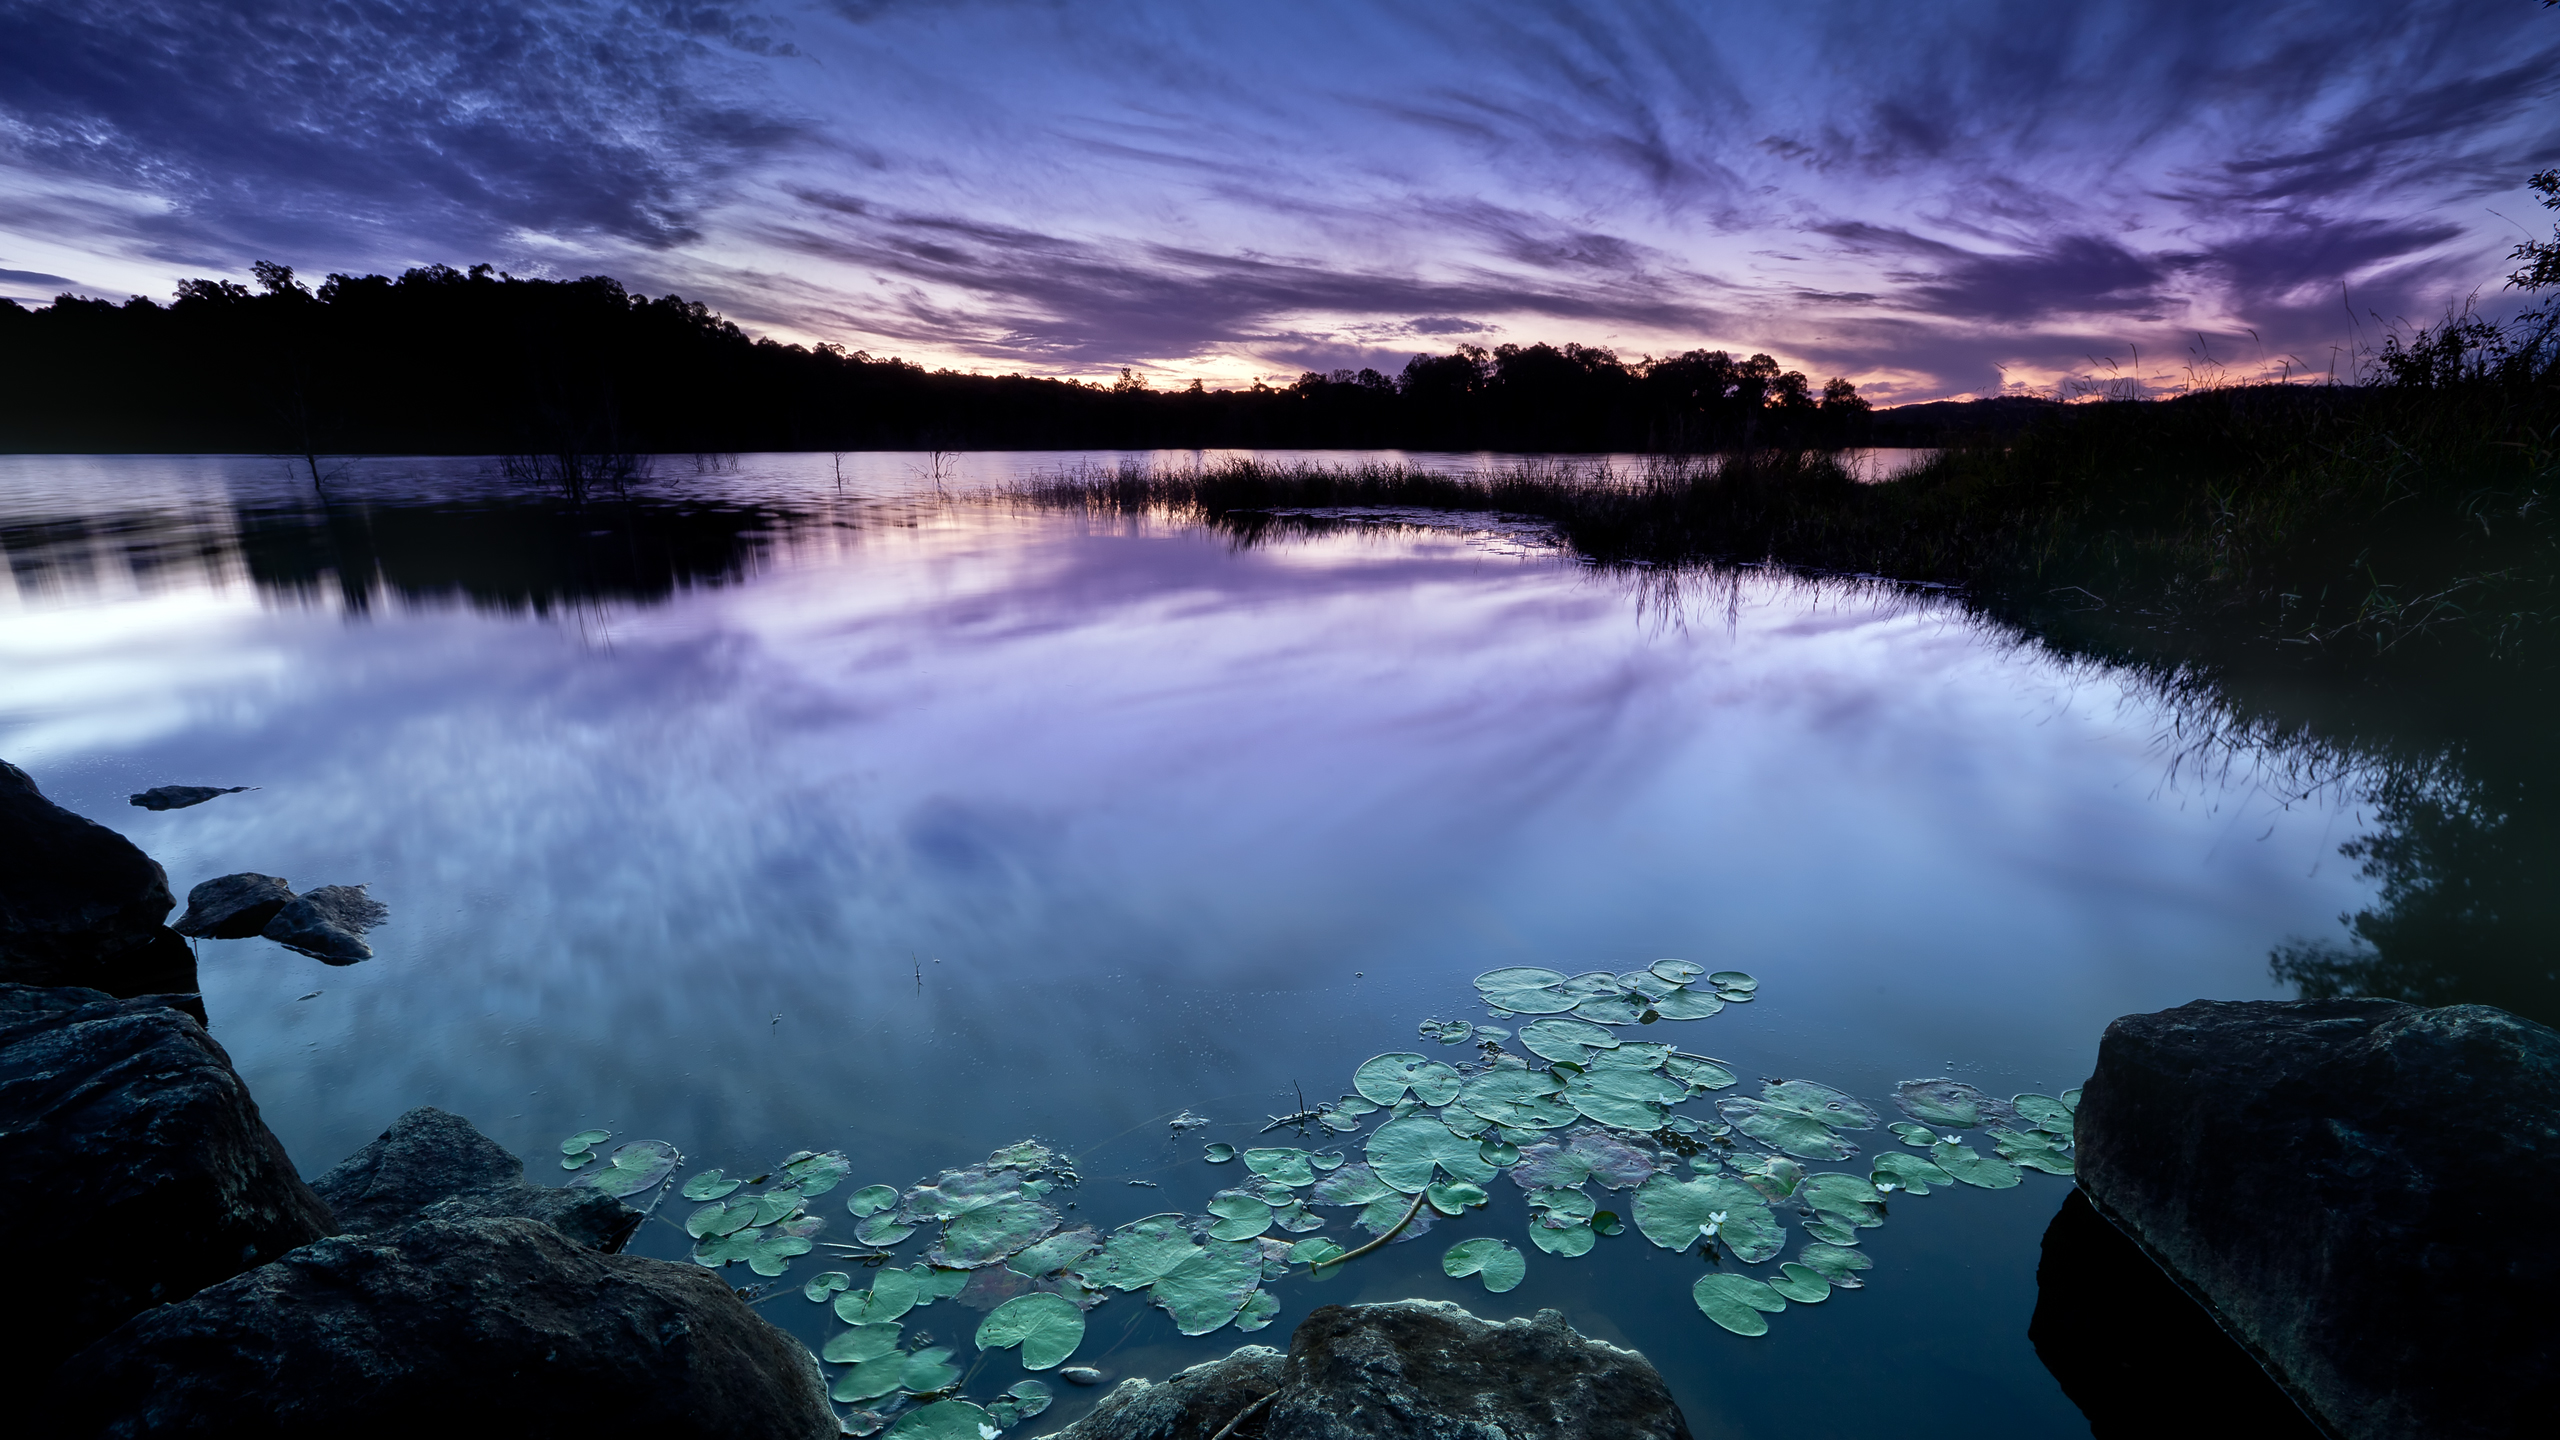 General 2560x1440 photography nature clouds water plants dark